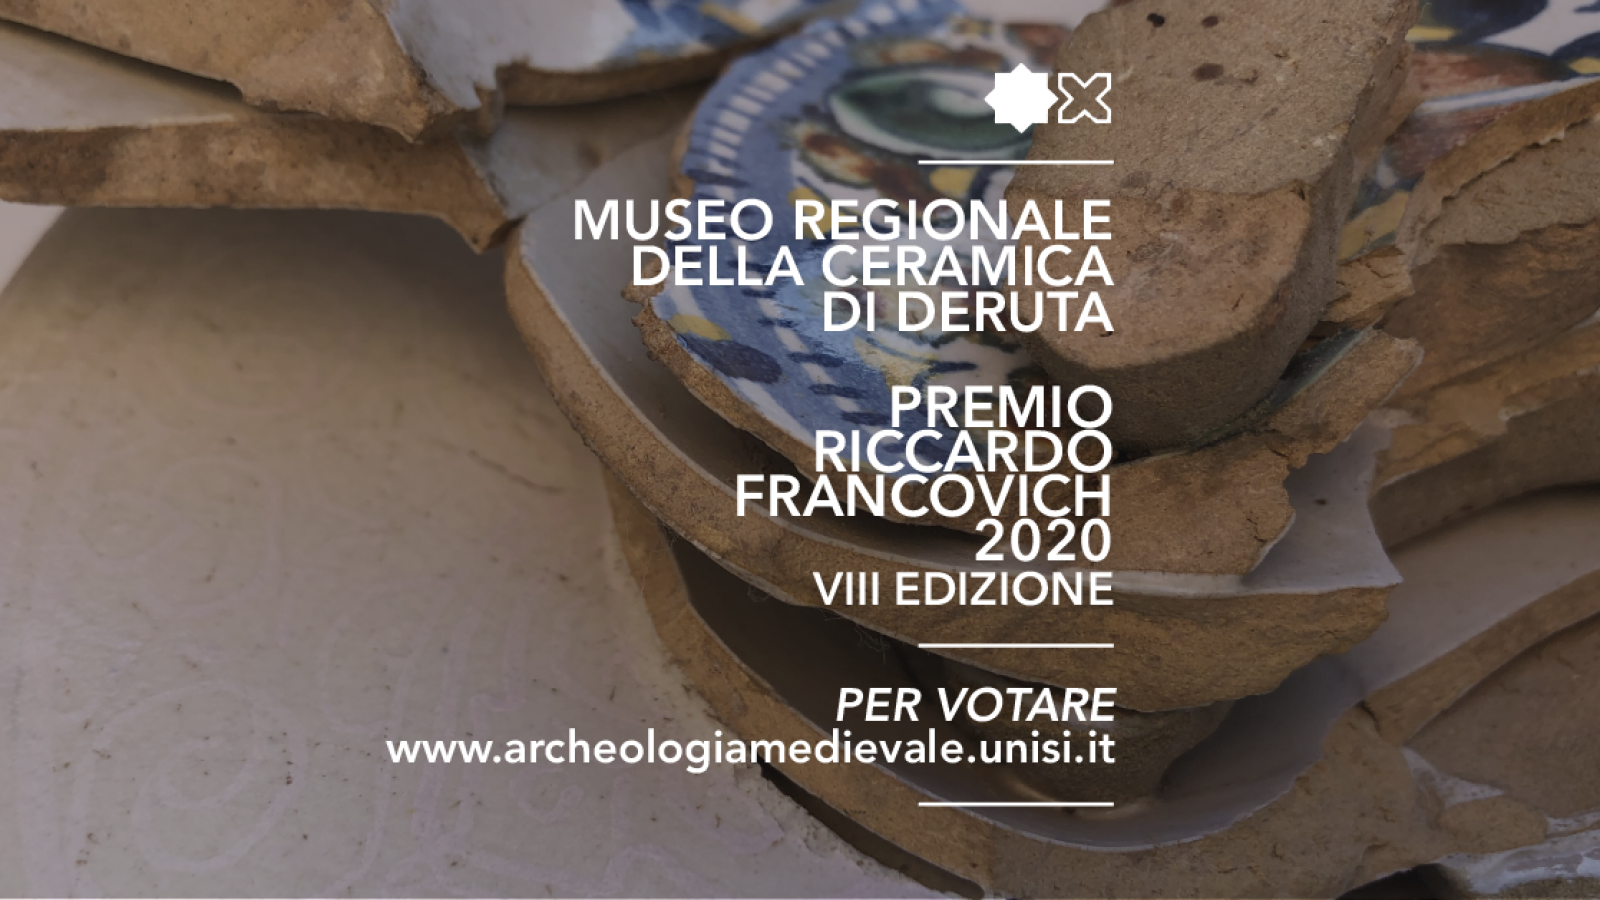 The Regional Ceramics Museum in Deruta selected for Renato Francovich prize aword 2020